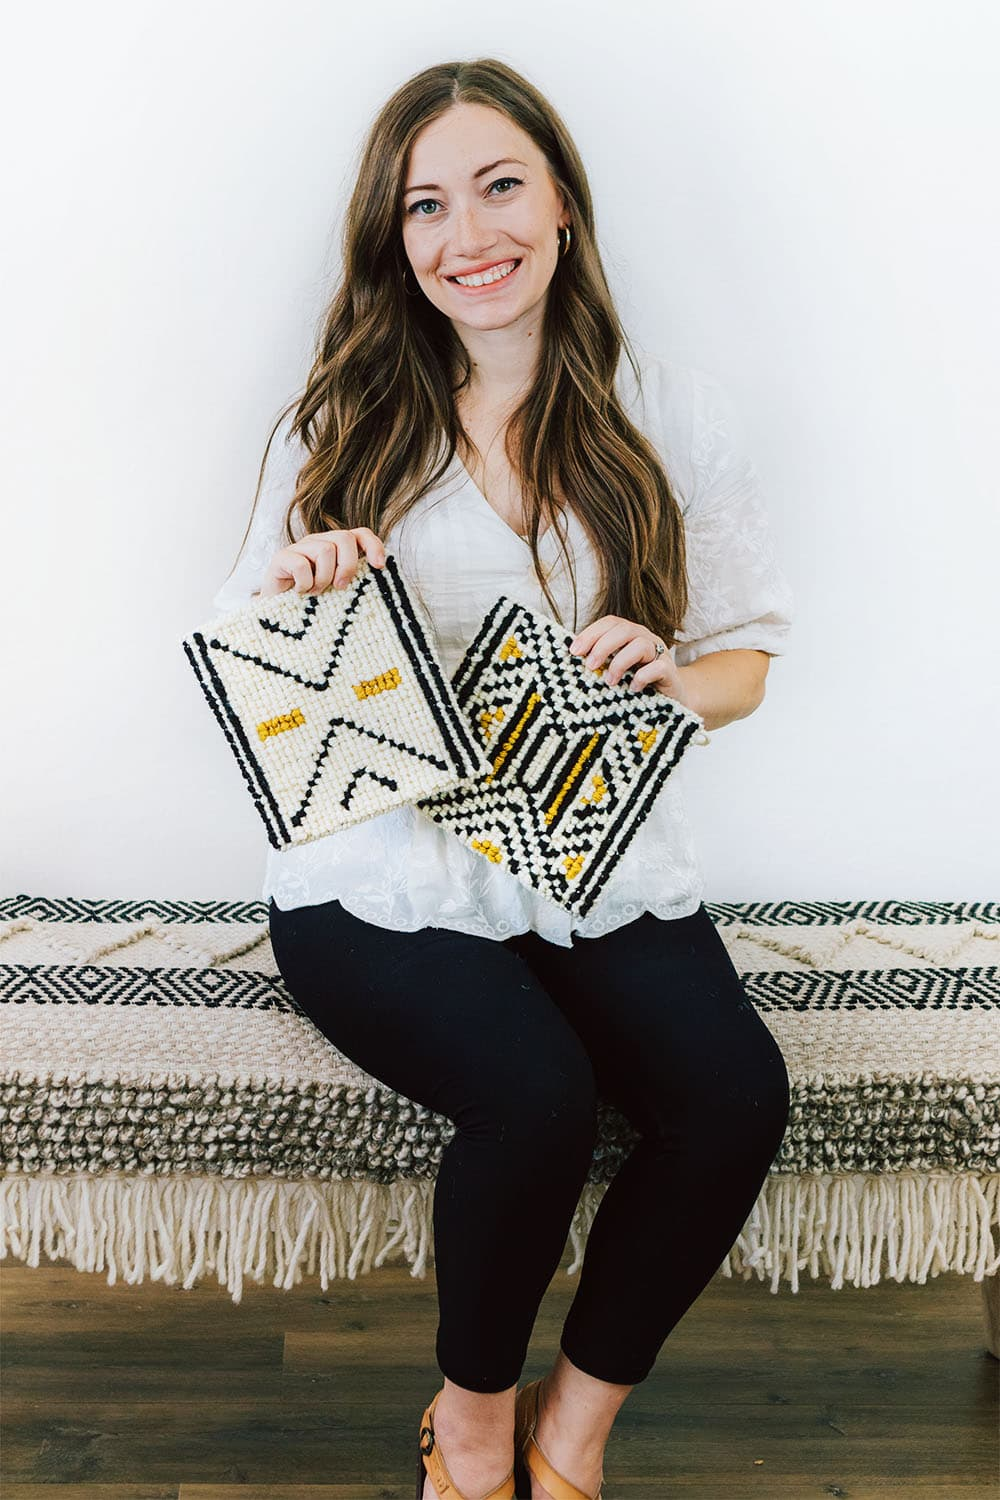 The Crafter's Box   Locker Hooking   Lindsey Campbell